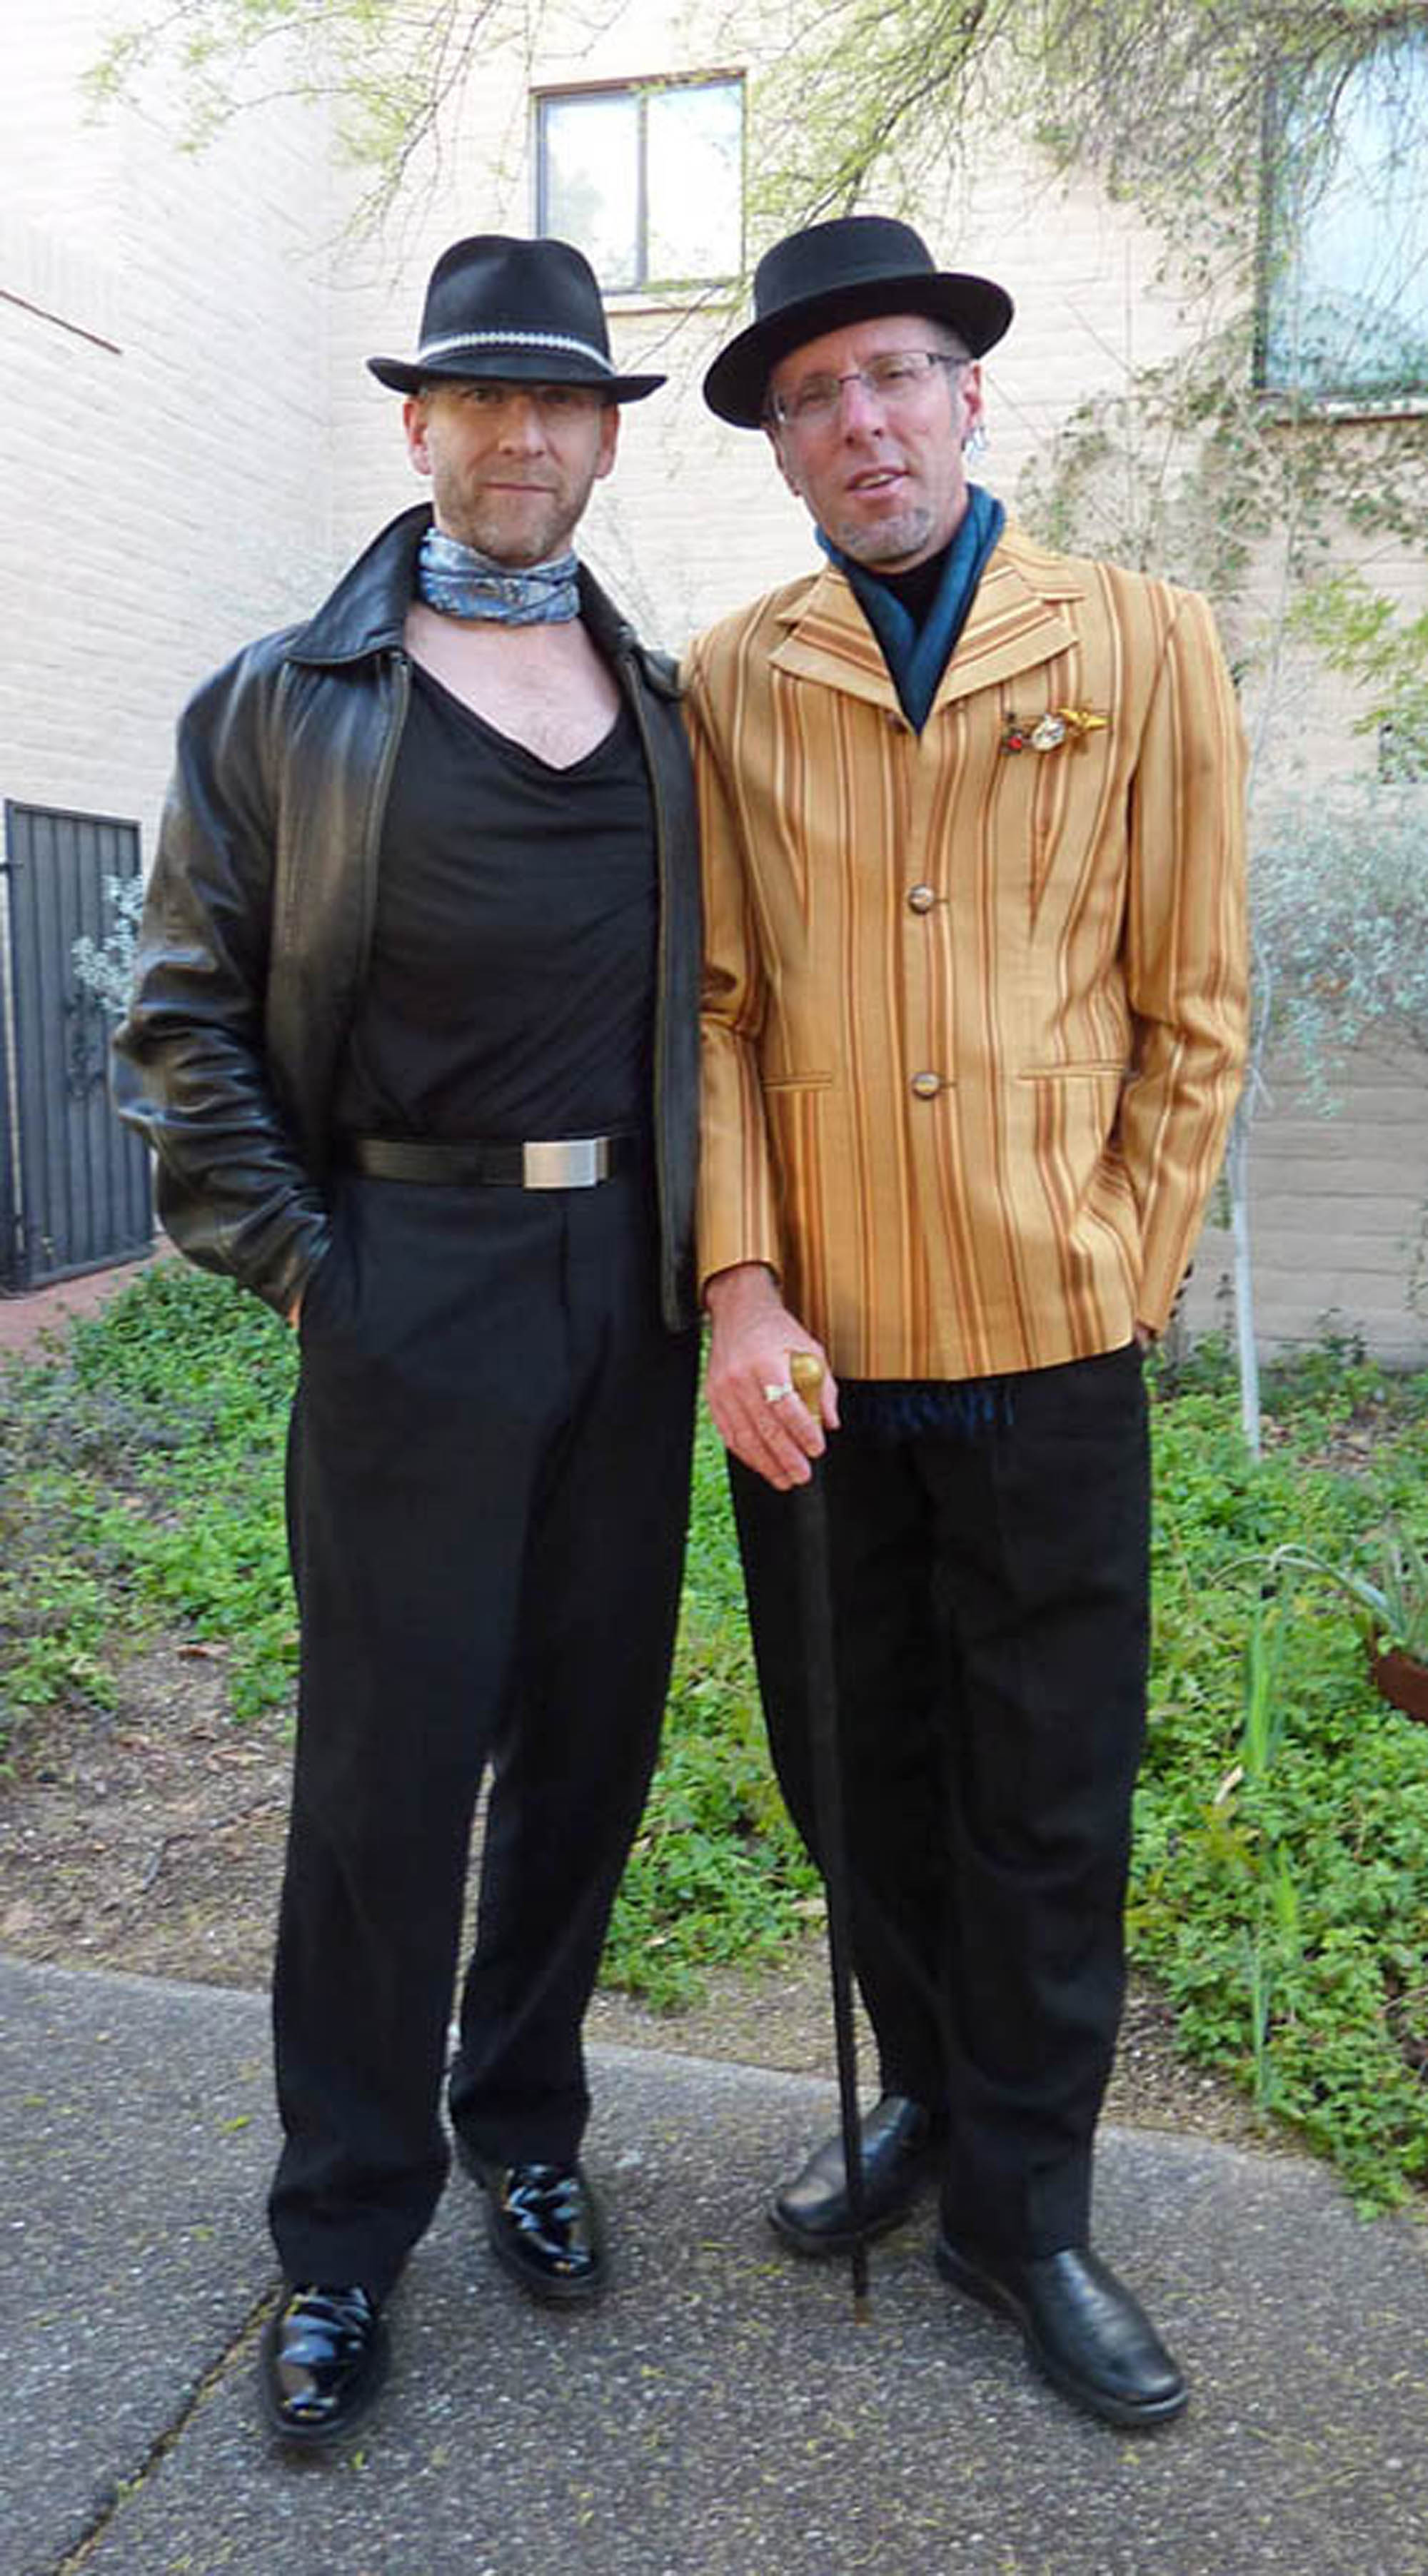 Not ones to let the ladies get all the attention, Tucson natives David Gilmore and Michael Baun were stepping out in dandy style. David is wearing a mustard-striped jacket he designed himself and had custom-made in Thailand – he says he gets a lot of clothes made there – and Michael is wearing a vintage-contemporary combo all in black. Both men are sporting cravats. The pork pie hat is one of Gilmore's signatures, the walking stick a fashion fillip!